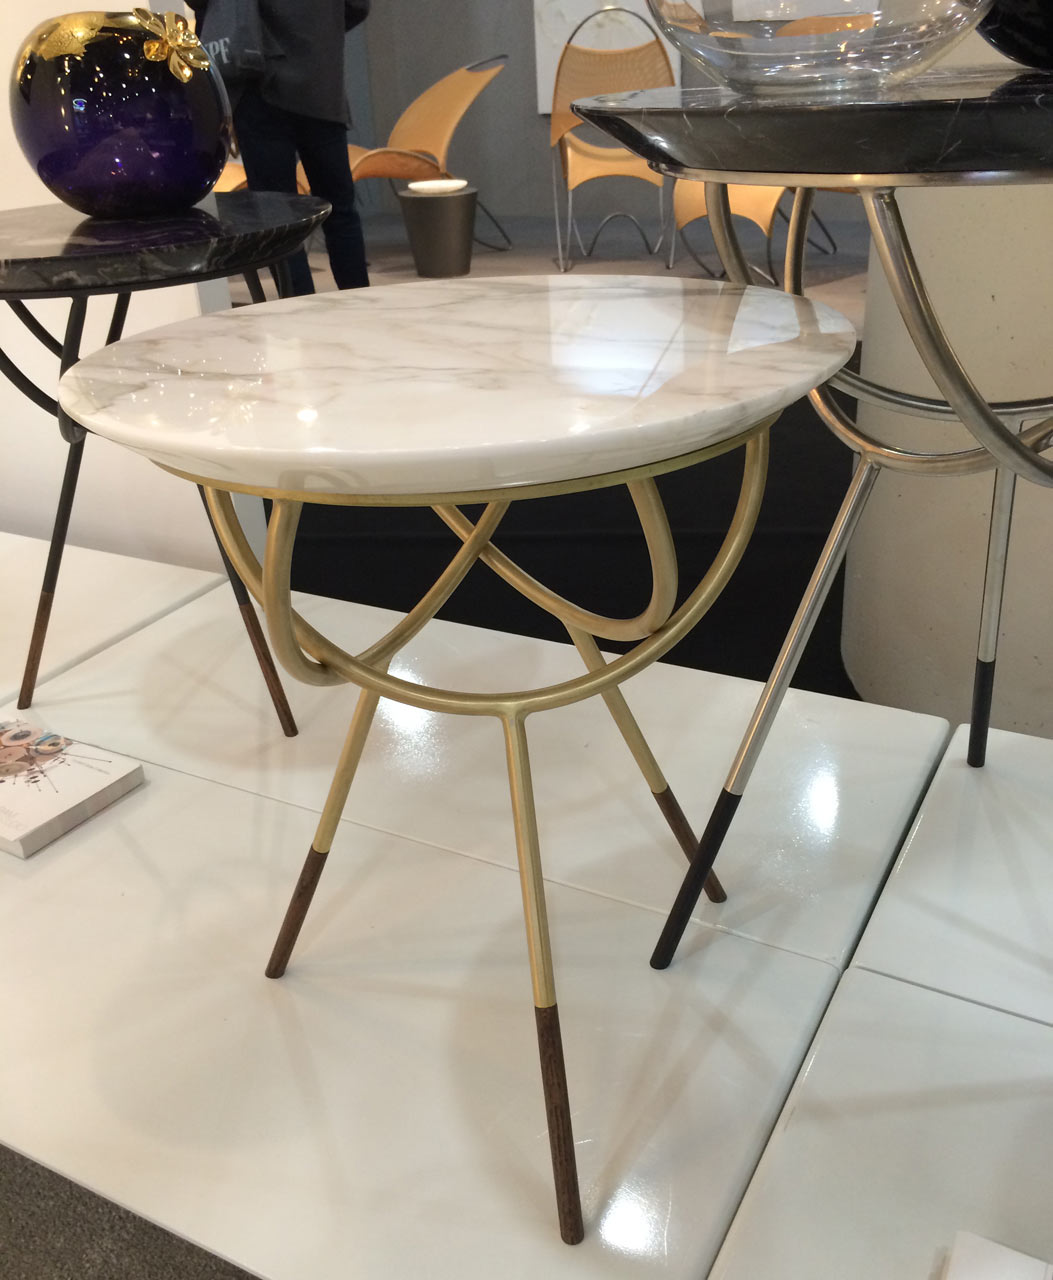 ICFF1-8-Avram-Rusu-Atlas-Table